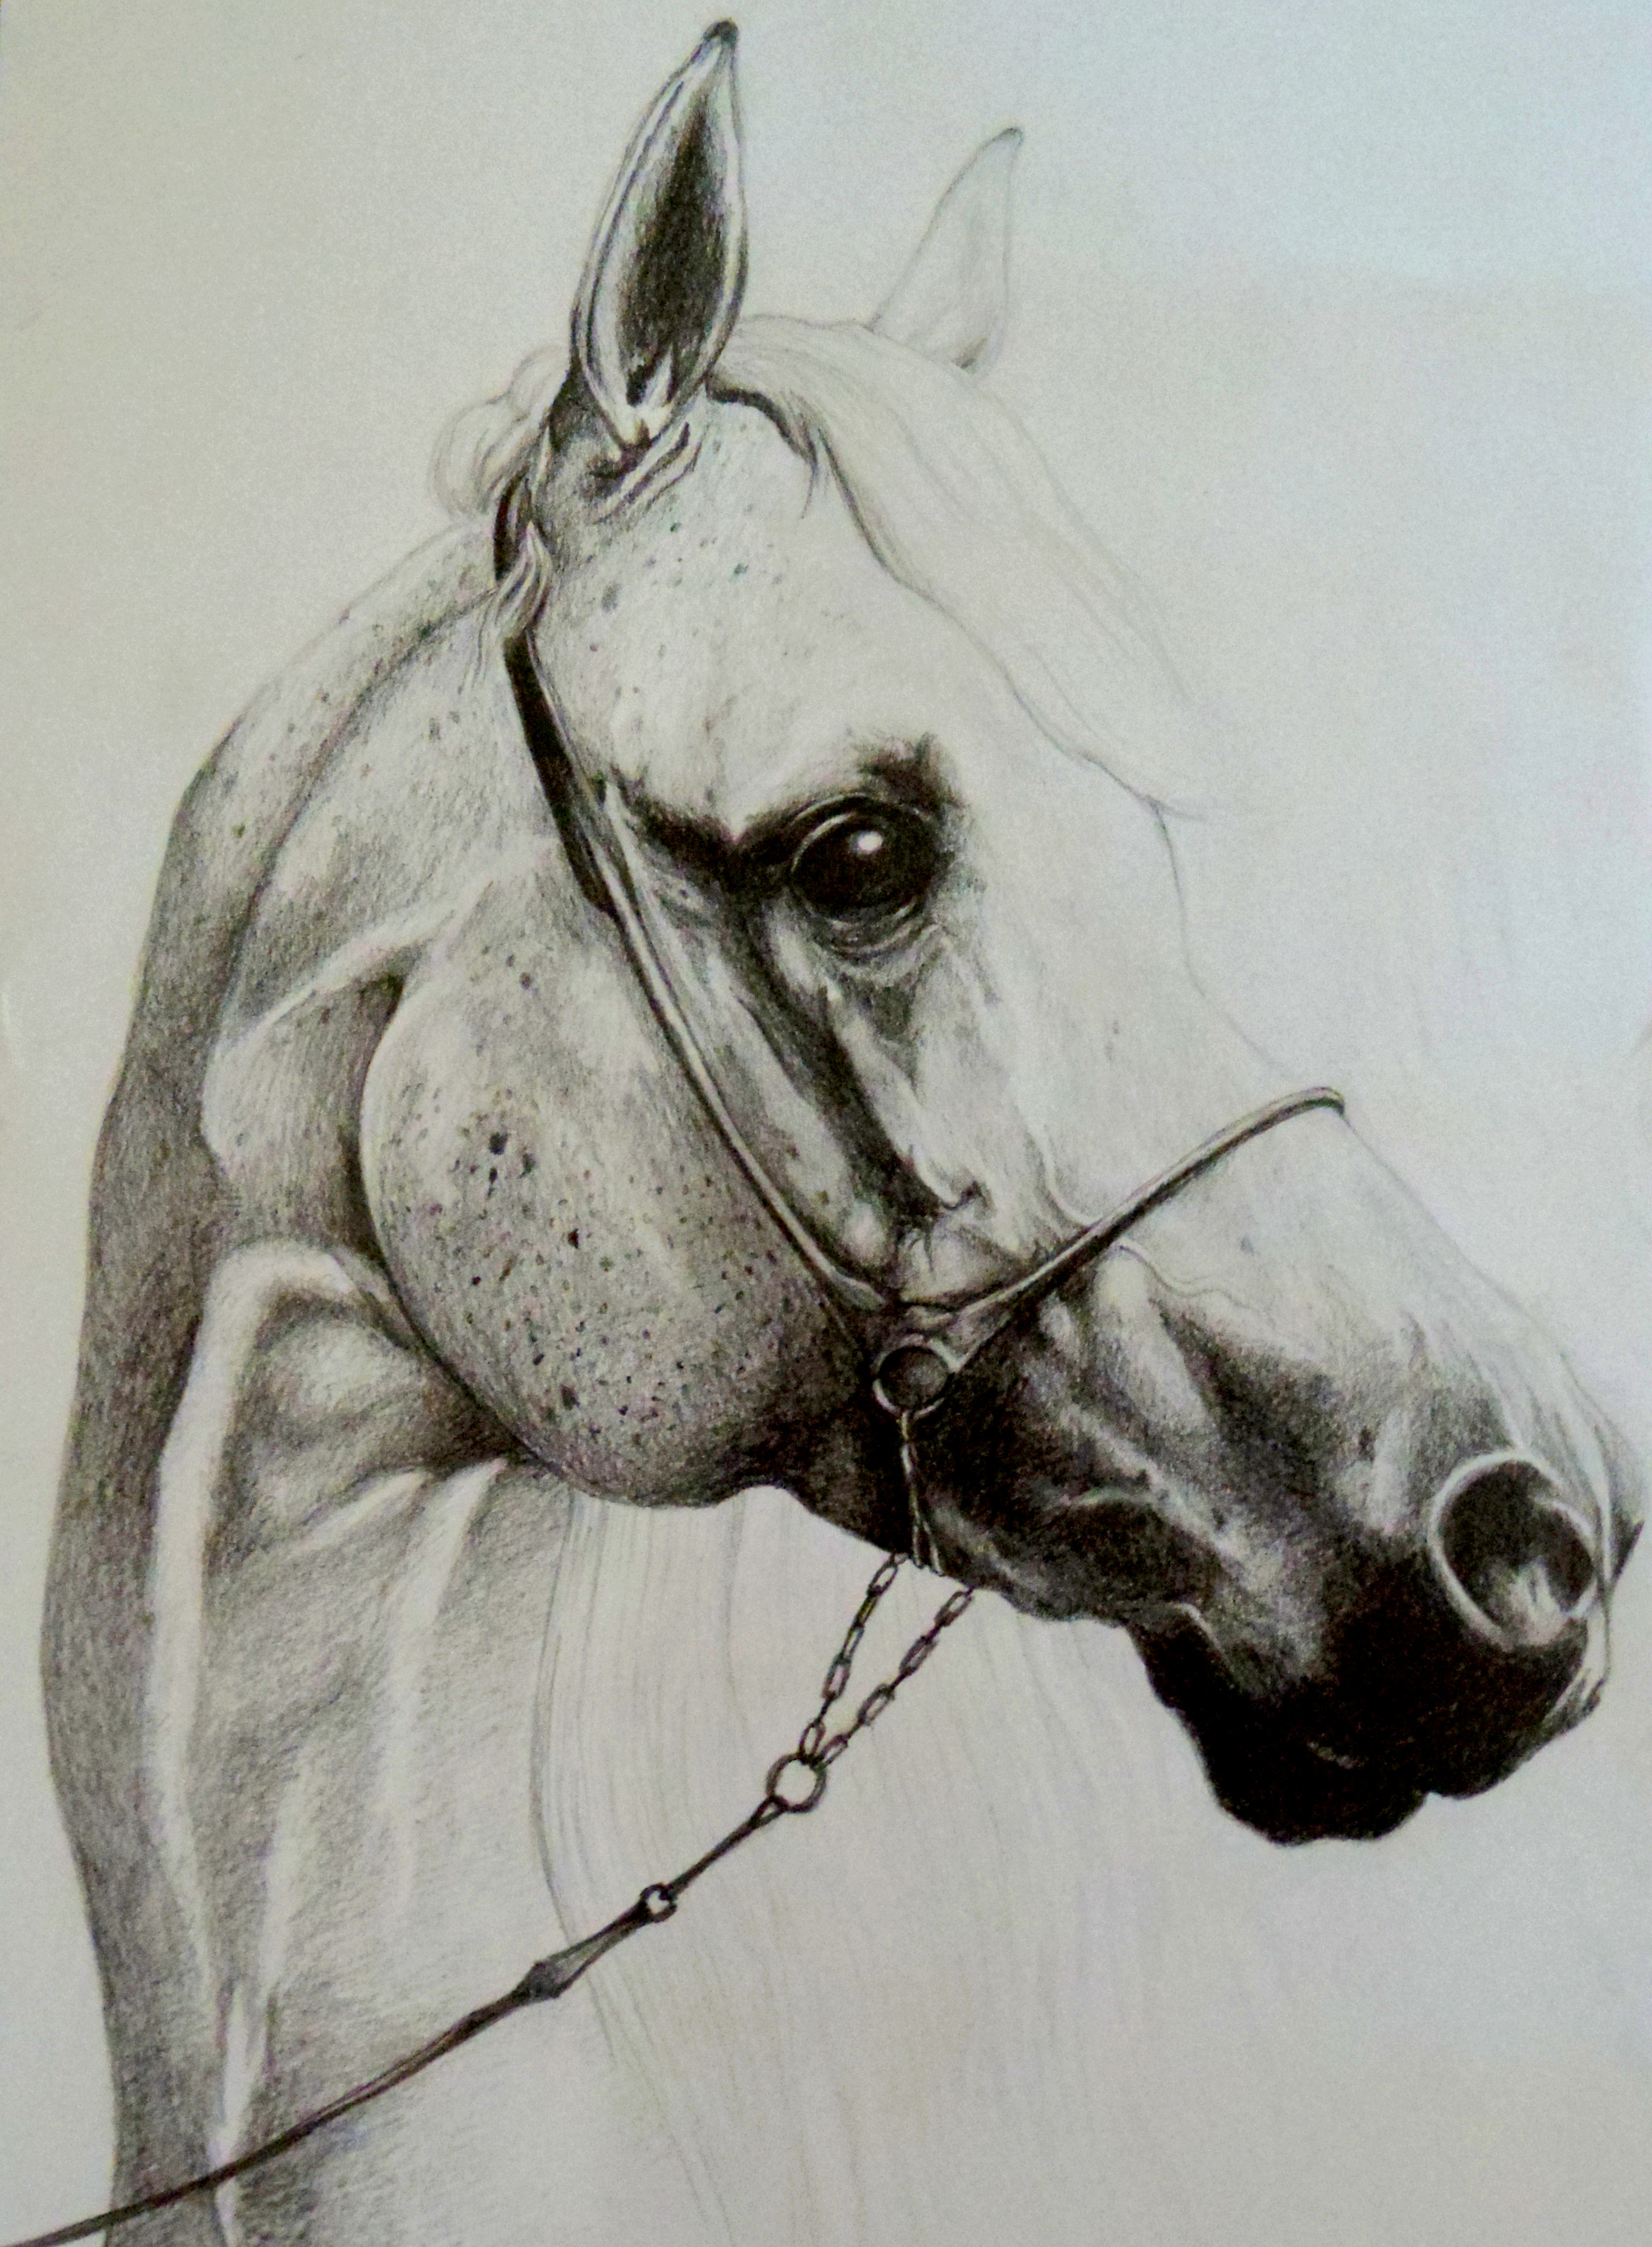 2941x4000 Pencil Sketches Of Horse Heads Horse Head Pencil Drawingwuillow27